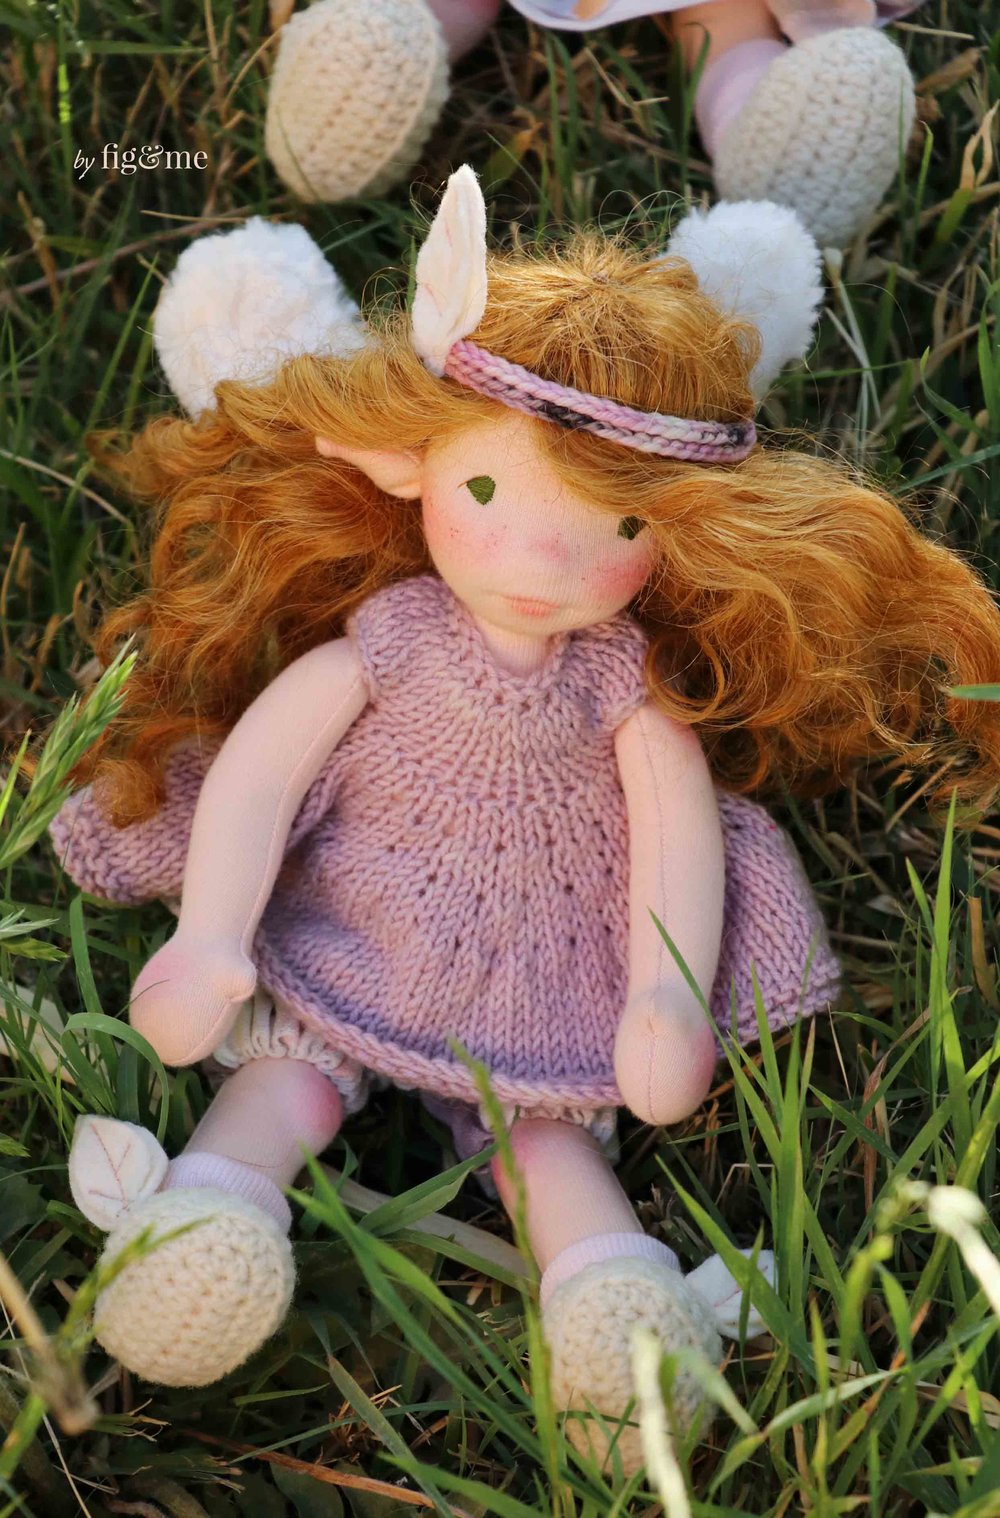 Beileag, a natural fiber art doll by Fig and Me.